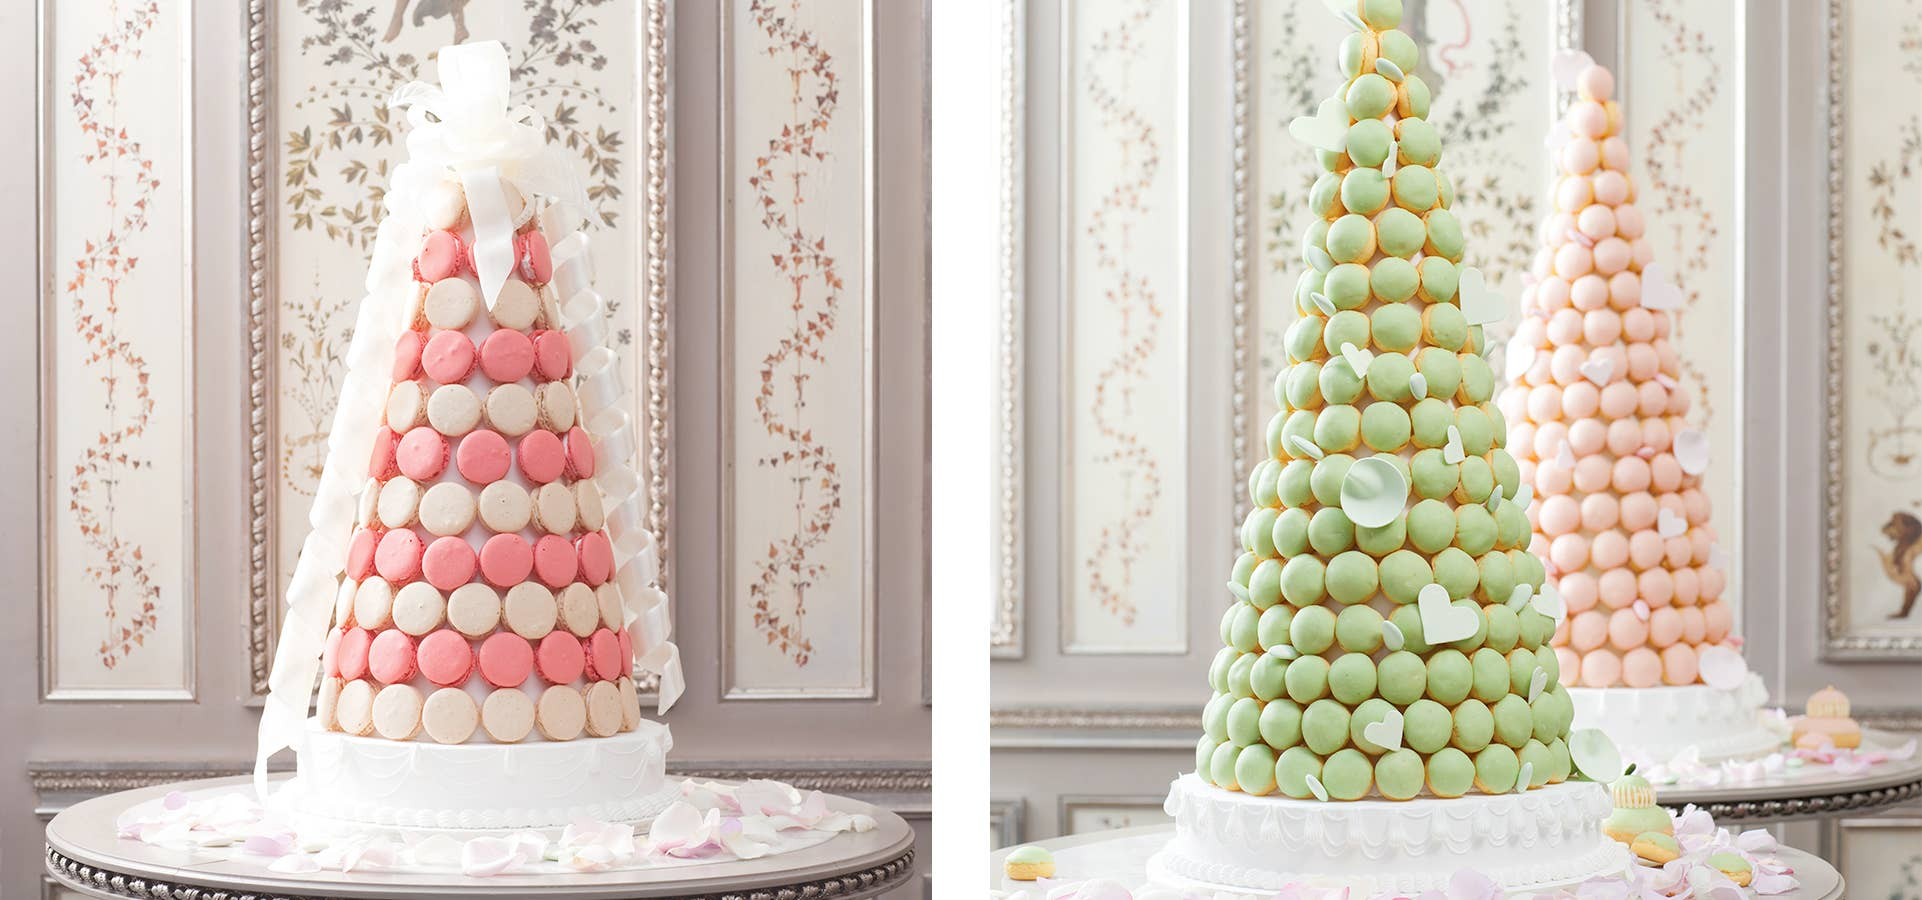 With Ings Flown In From France Ladurée Beverly Hills Also Creates Extraordinary Bespoke Wedding Cakes Yes We Are Famous For Our Macarons Says